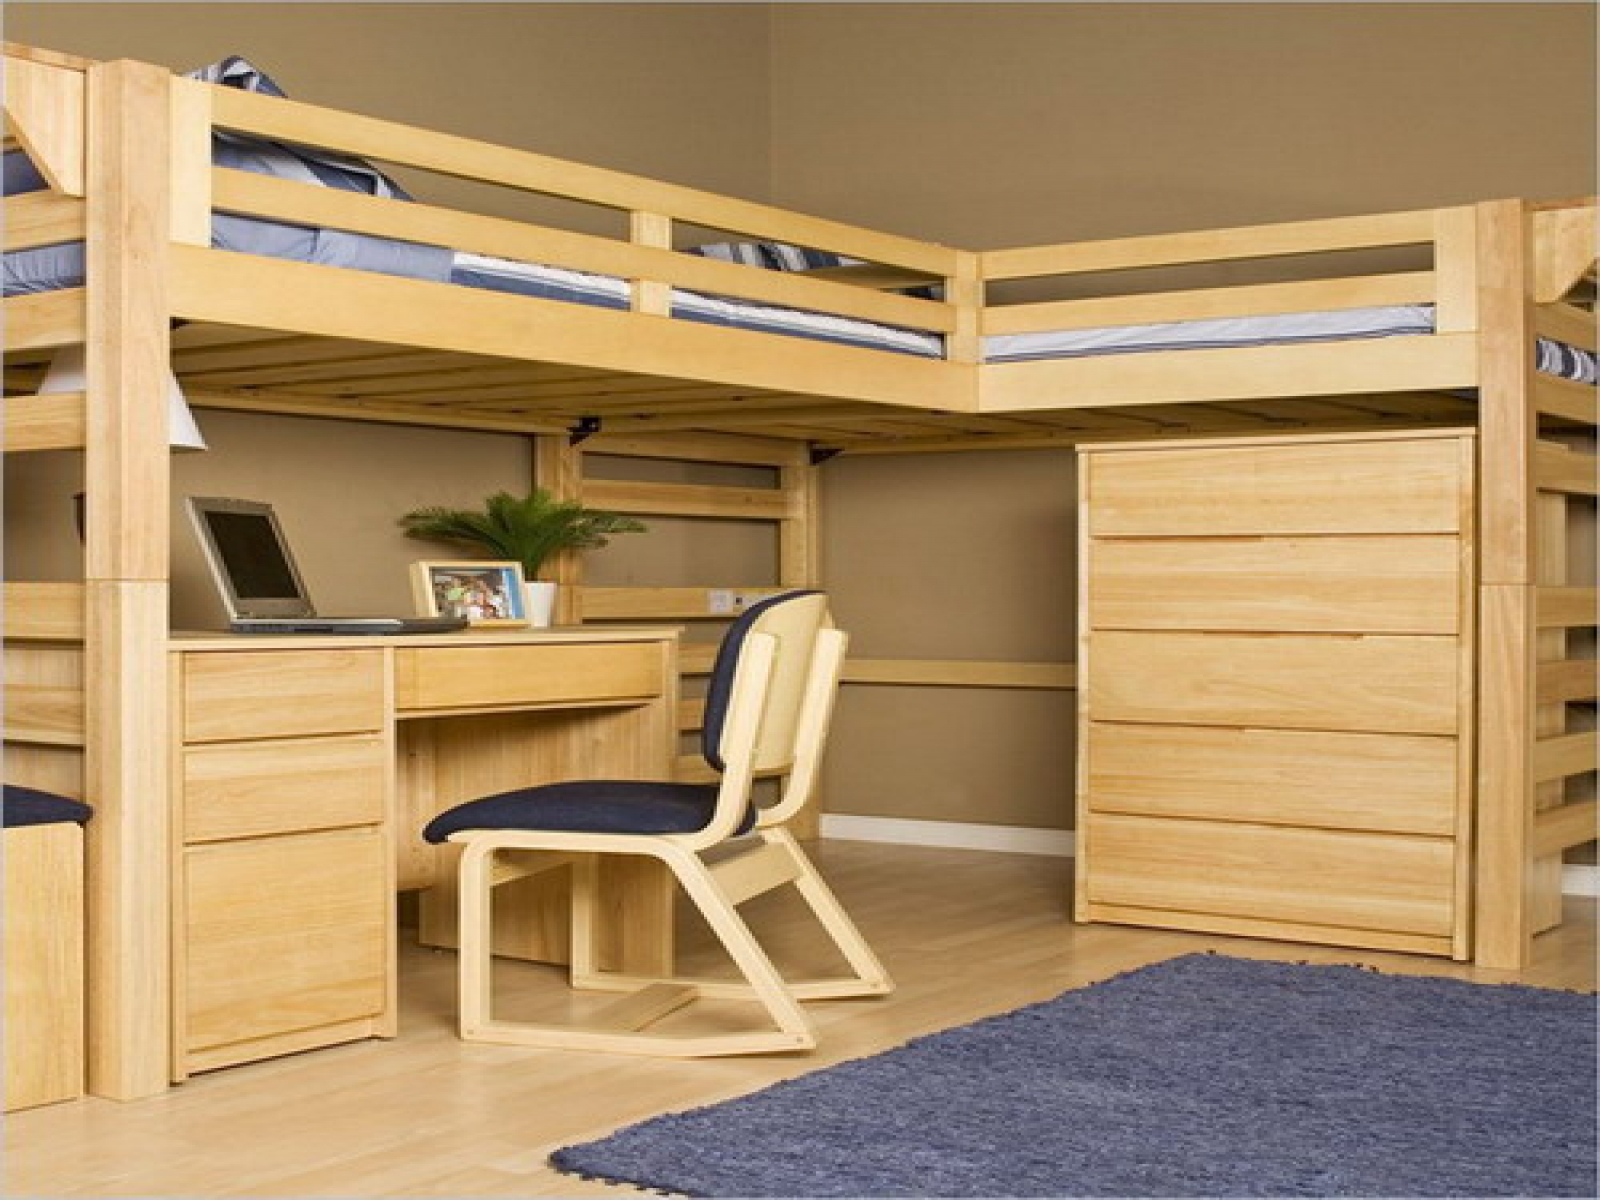 Picture of: Astonishing L Shaped Bunk Beds Designs With Pictures Decor Or Design